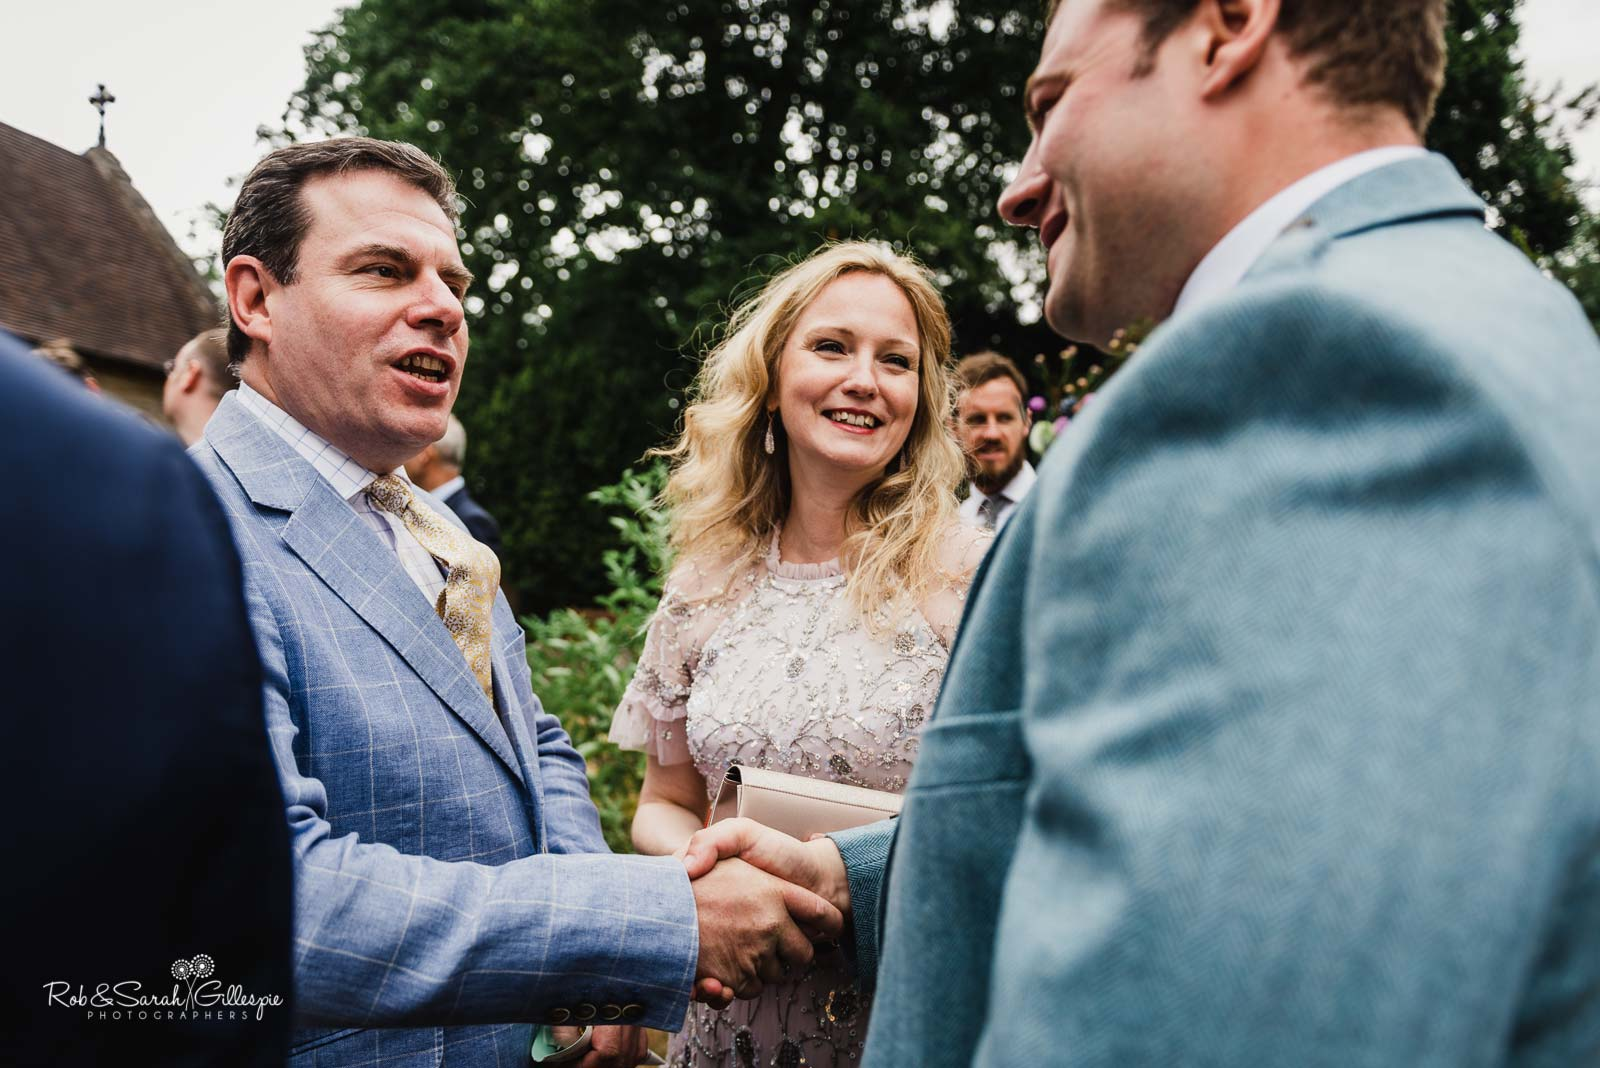 Documentary wedding photography at St Giles church Packwood